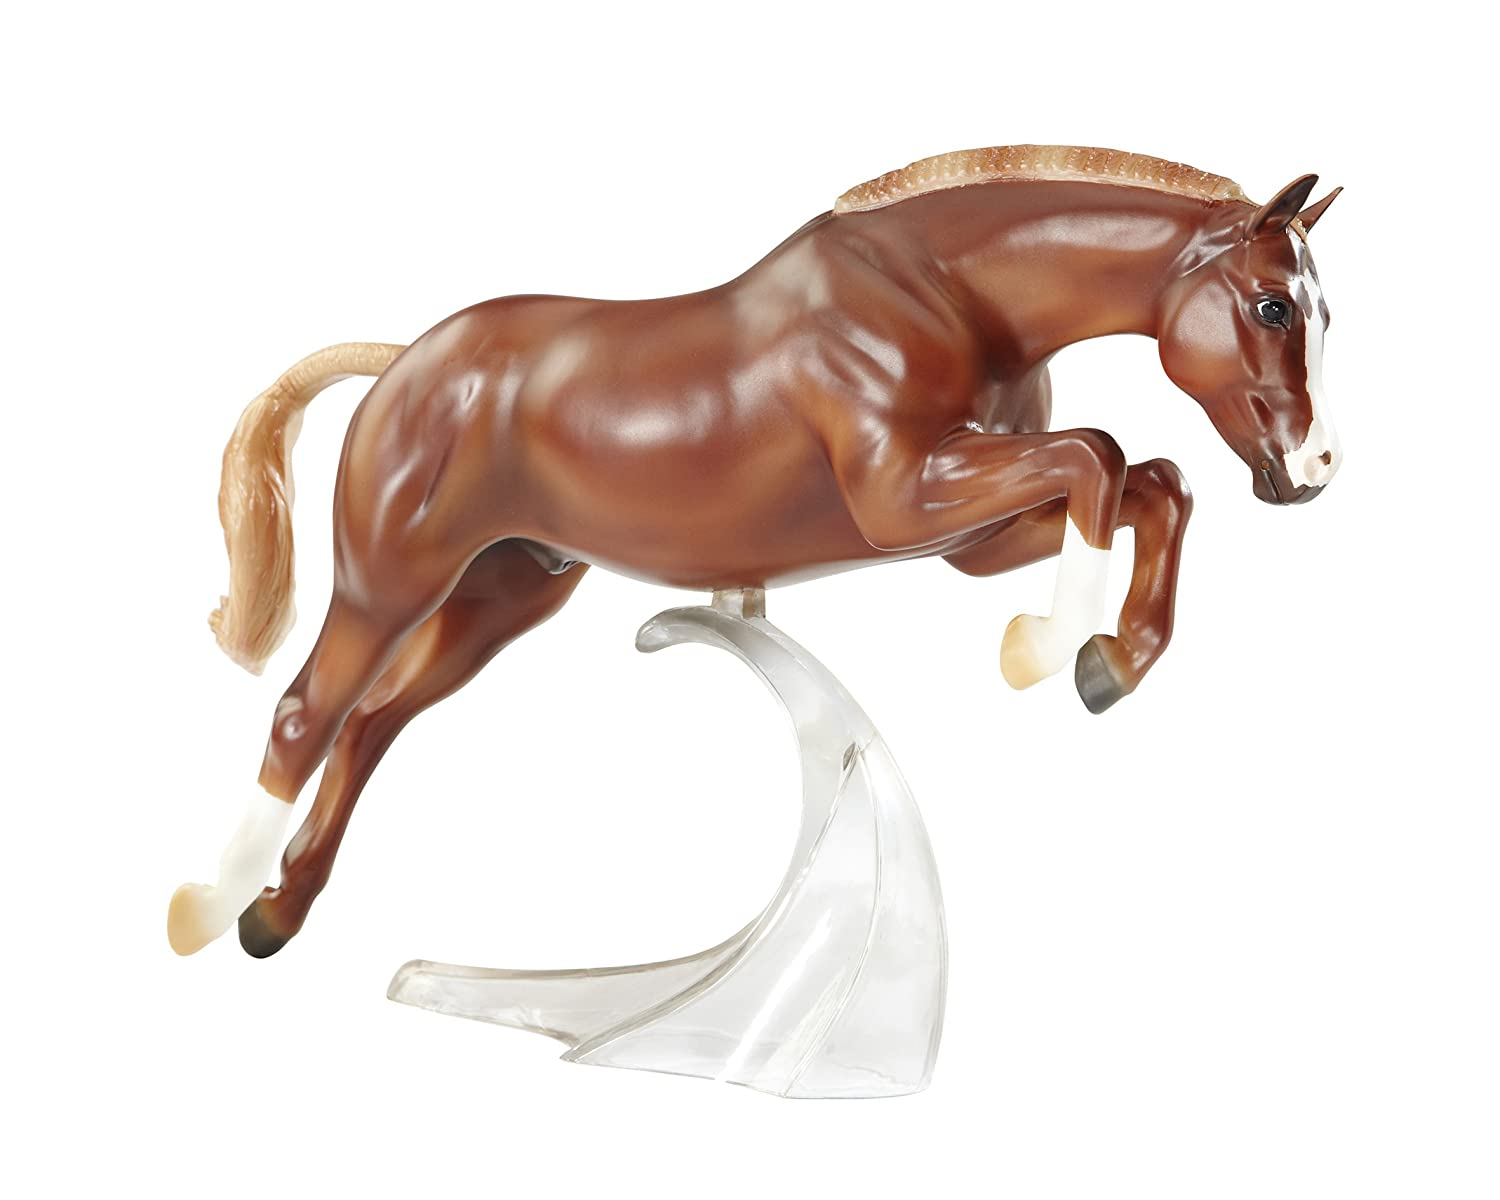 Amazon.com: Breyer Ballou Toy Figure: Toys & Games